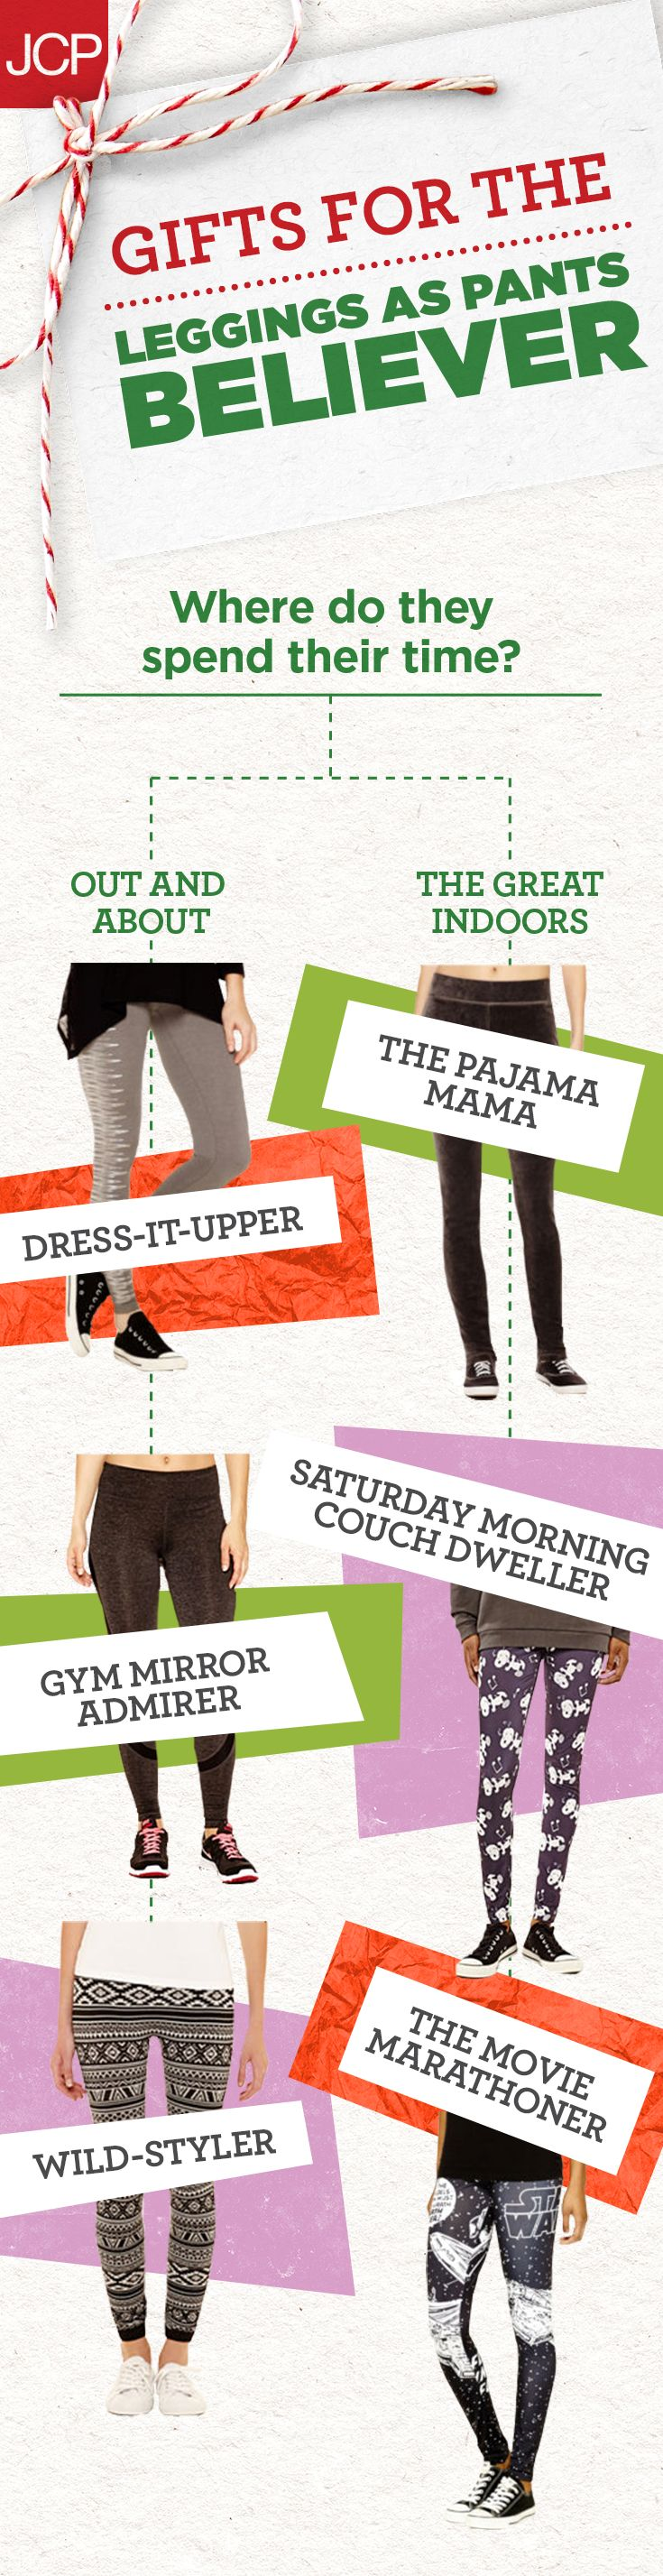 Whether you think they're pants or not, the Leggings as Pants Believer in your life totally is digging the leggings trend. They'll dress them up for a glam look or keep them casual during cold weather. Use this guide to find out the perfect print or most fabulous flair, no matter the occasion.